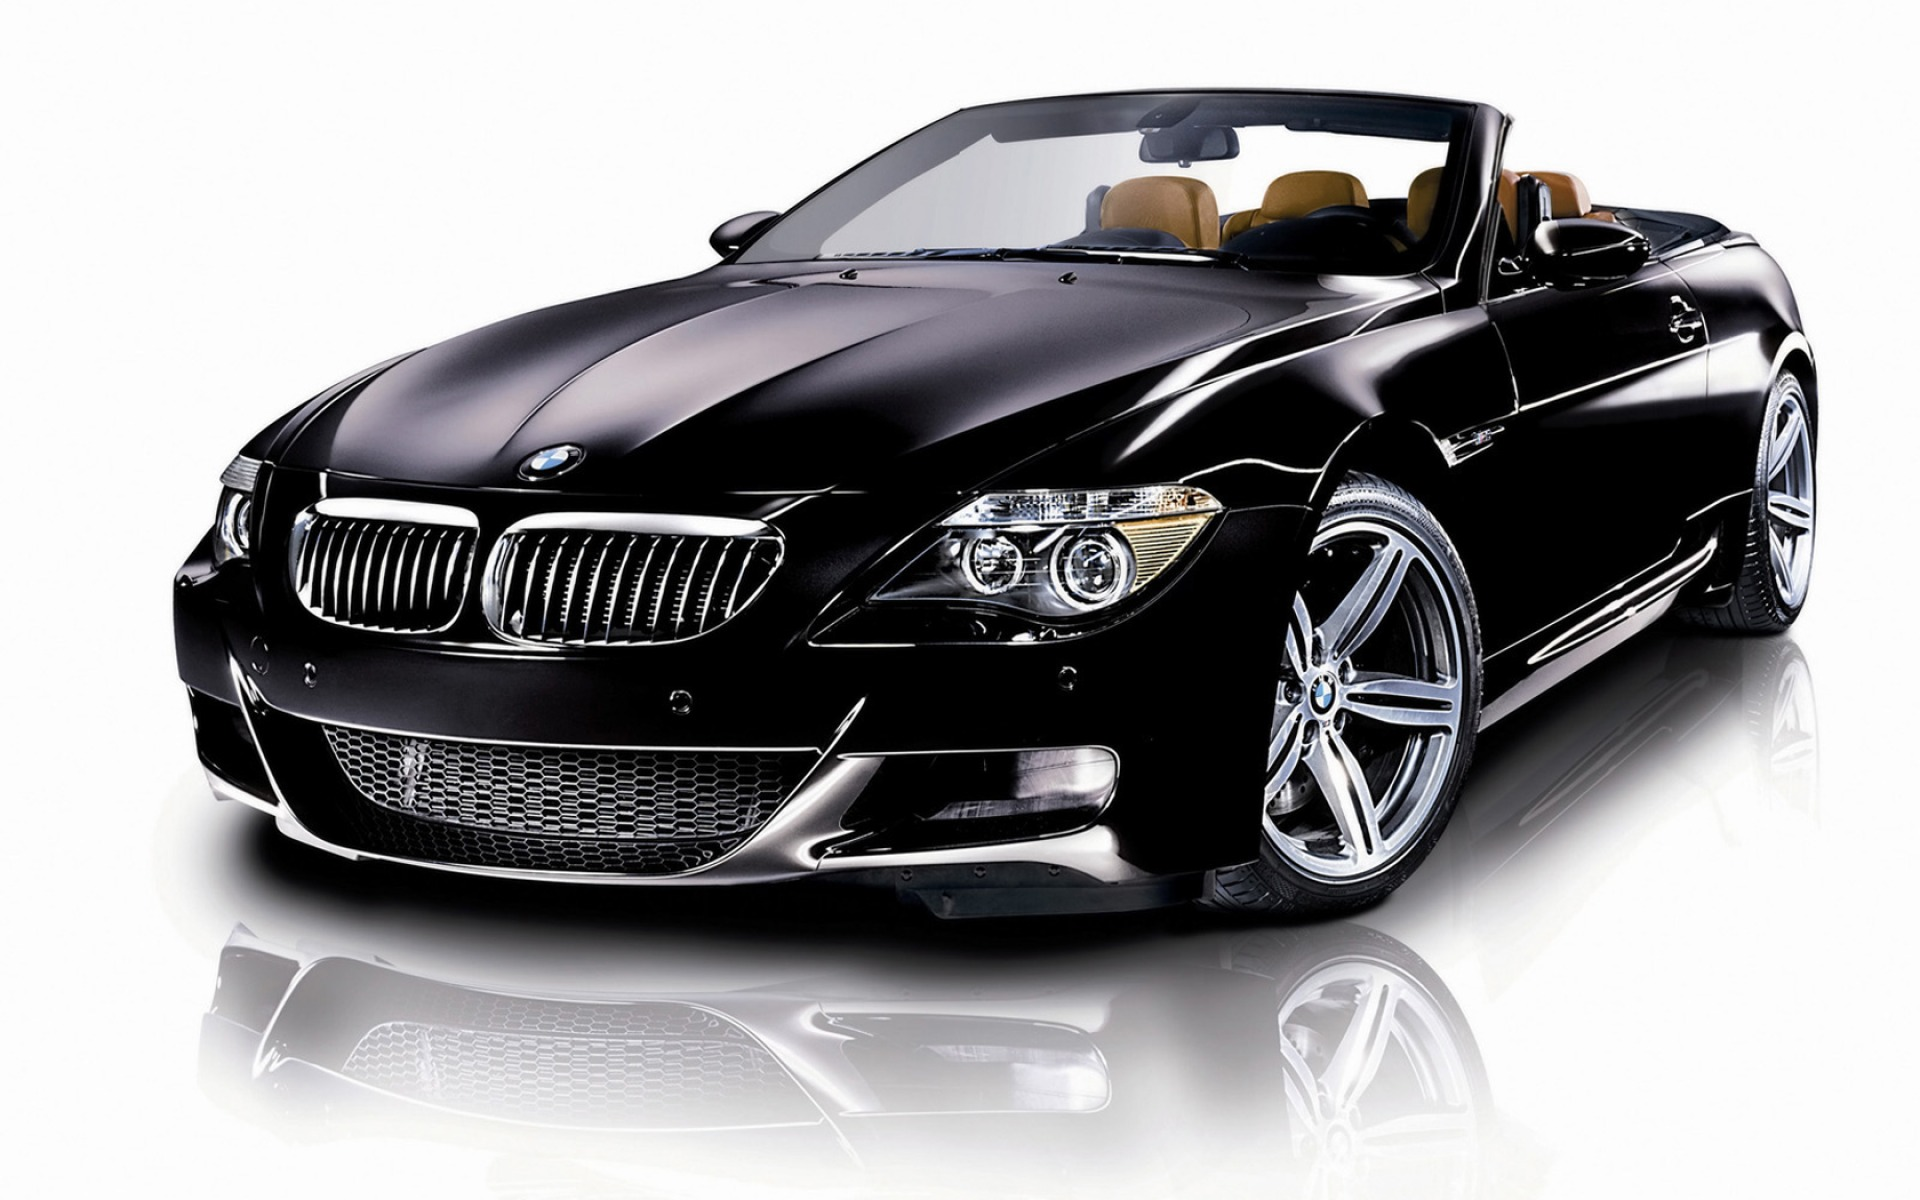 Ultrablogus  Winning Bmw Car Wallpaper Wallpapers For Free Download About   With Remarkable Bmw M Convertible Wallpaper Bmw Cars With Divine Cheap Interior Designers Also Custom Trailer Interior In Addition Jk Interior Mods And Cargo Trailer Interior Design As Well As B Interior Additionally Lockheed L  Interior From Allfreedownloadcom With Ultrablogus  Remarkable Bmw Car Wallpaper Wallpapers For Free Download About   With Divine Bmw M Convertible Wallpaper Bmw Cars And Winning Cheap Interior Designers Also Custom Trailer Interior In Addition Jk Interior Mods From Allfreedownloadcom